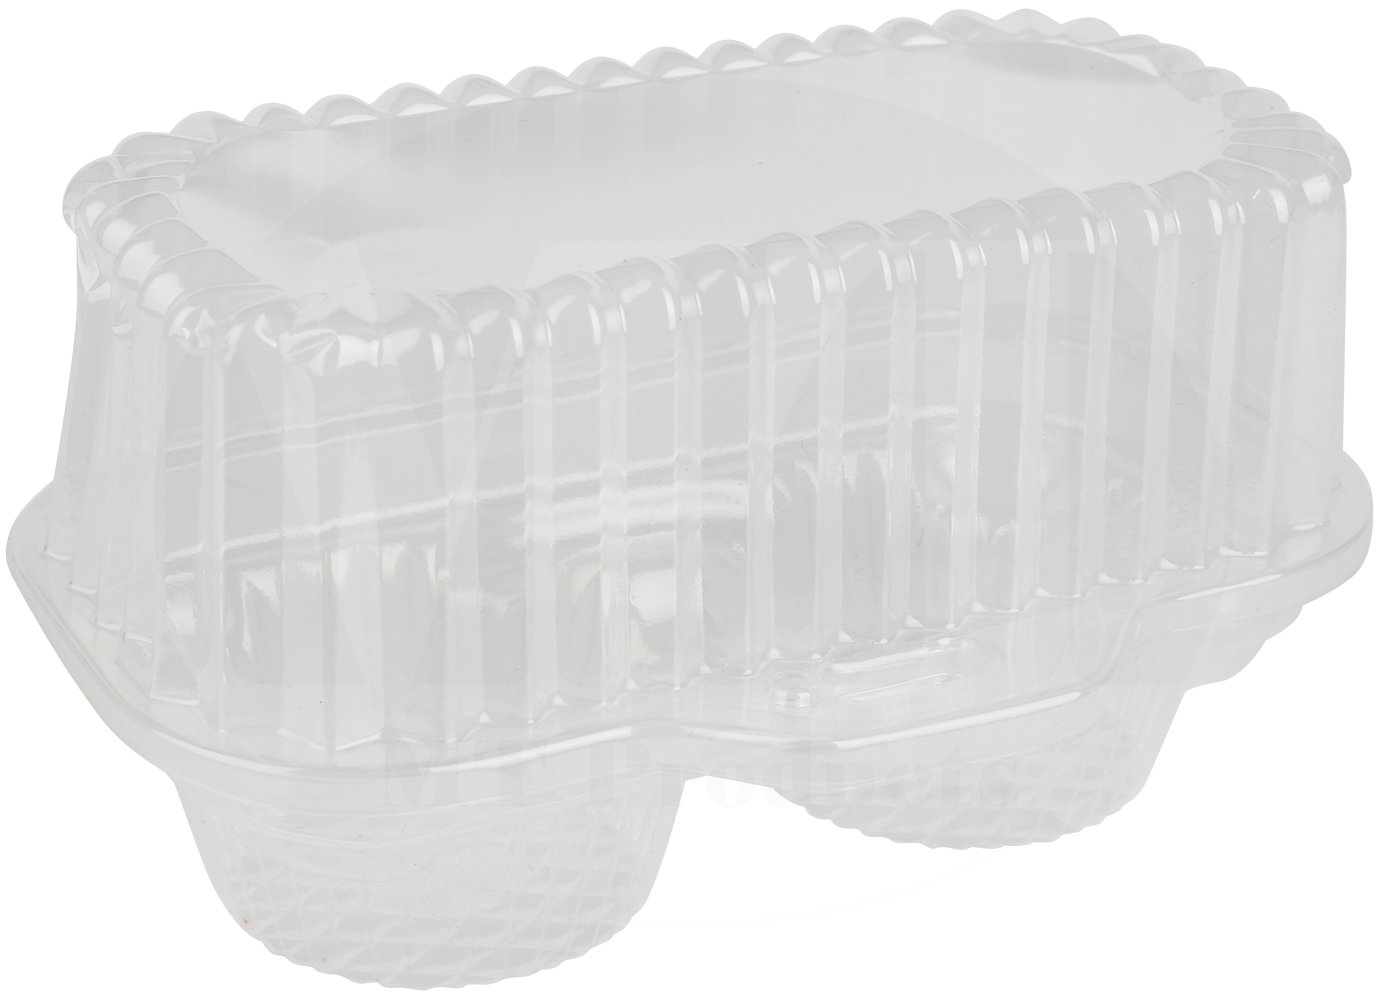 2 Compartment Hinged Clear Cupcake/Muffin Takeout Container by MT Products - (15 Pieces) 2CPCK15